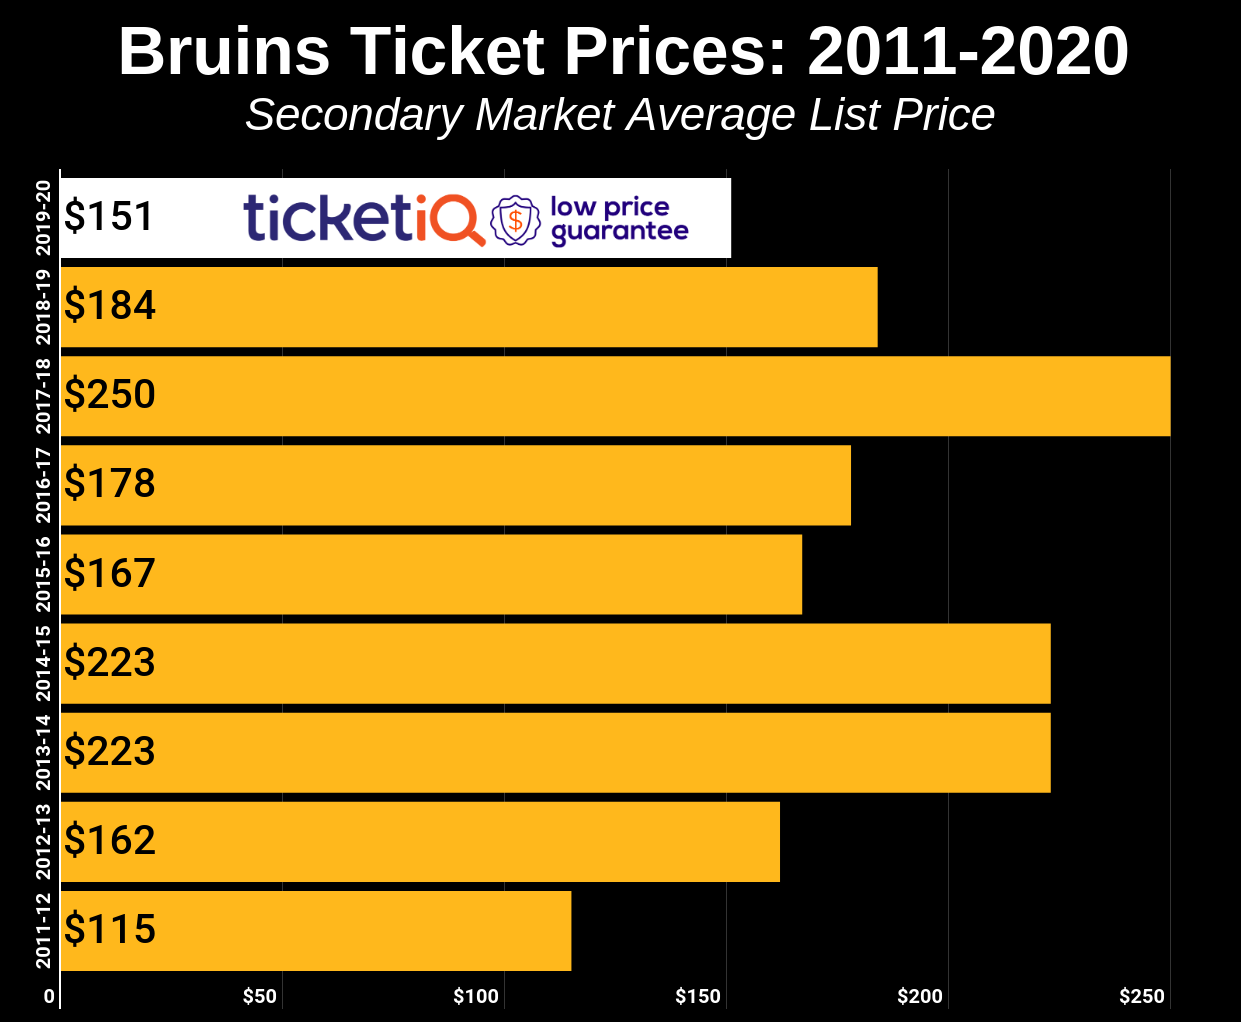 Bruins Ticket Prices